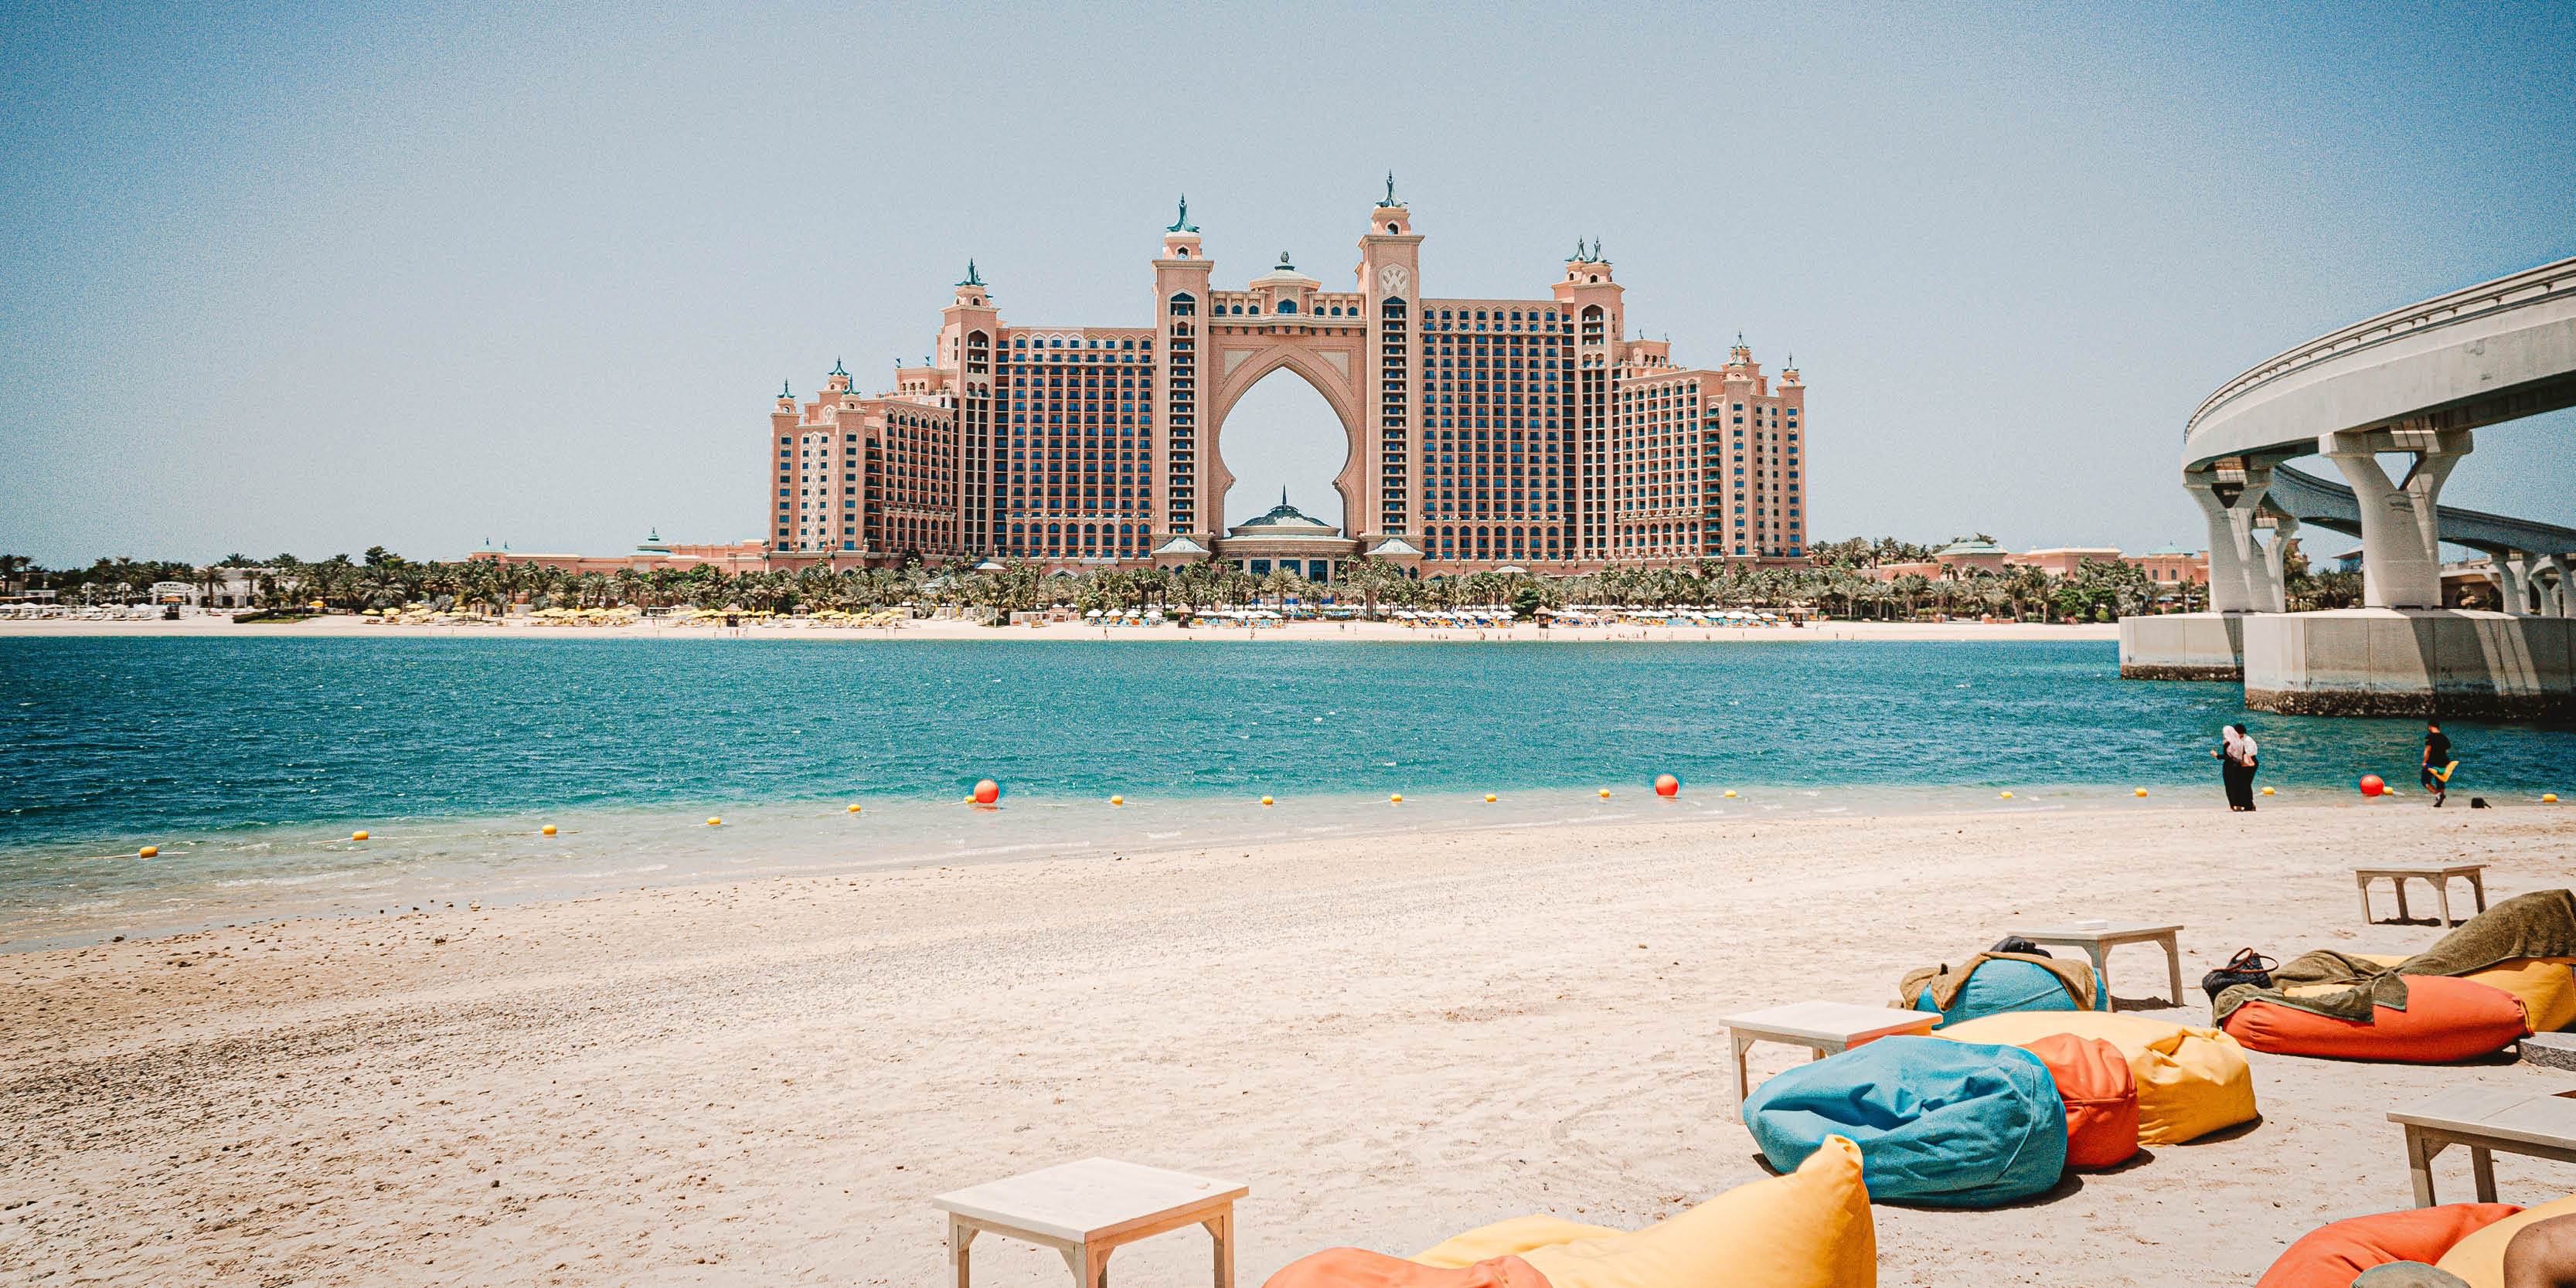 Dubai beach club Last-minute holiday